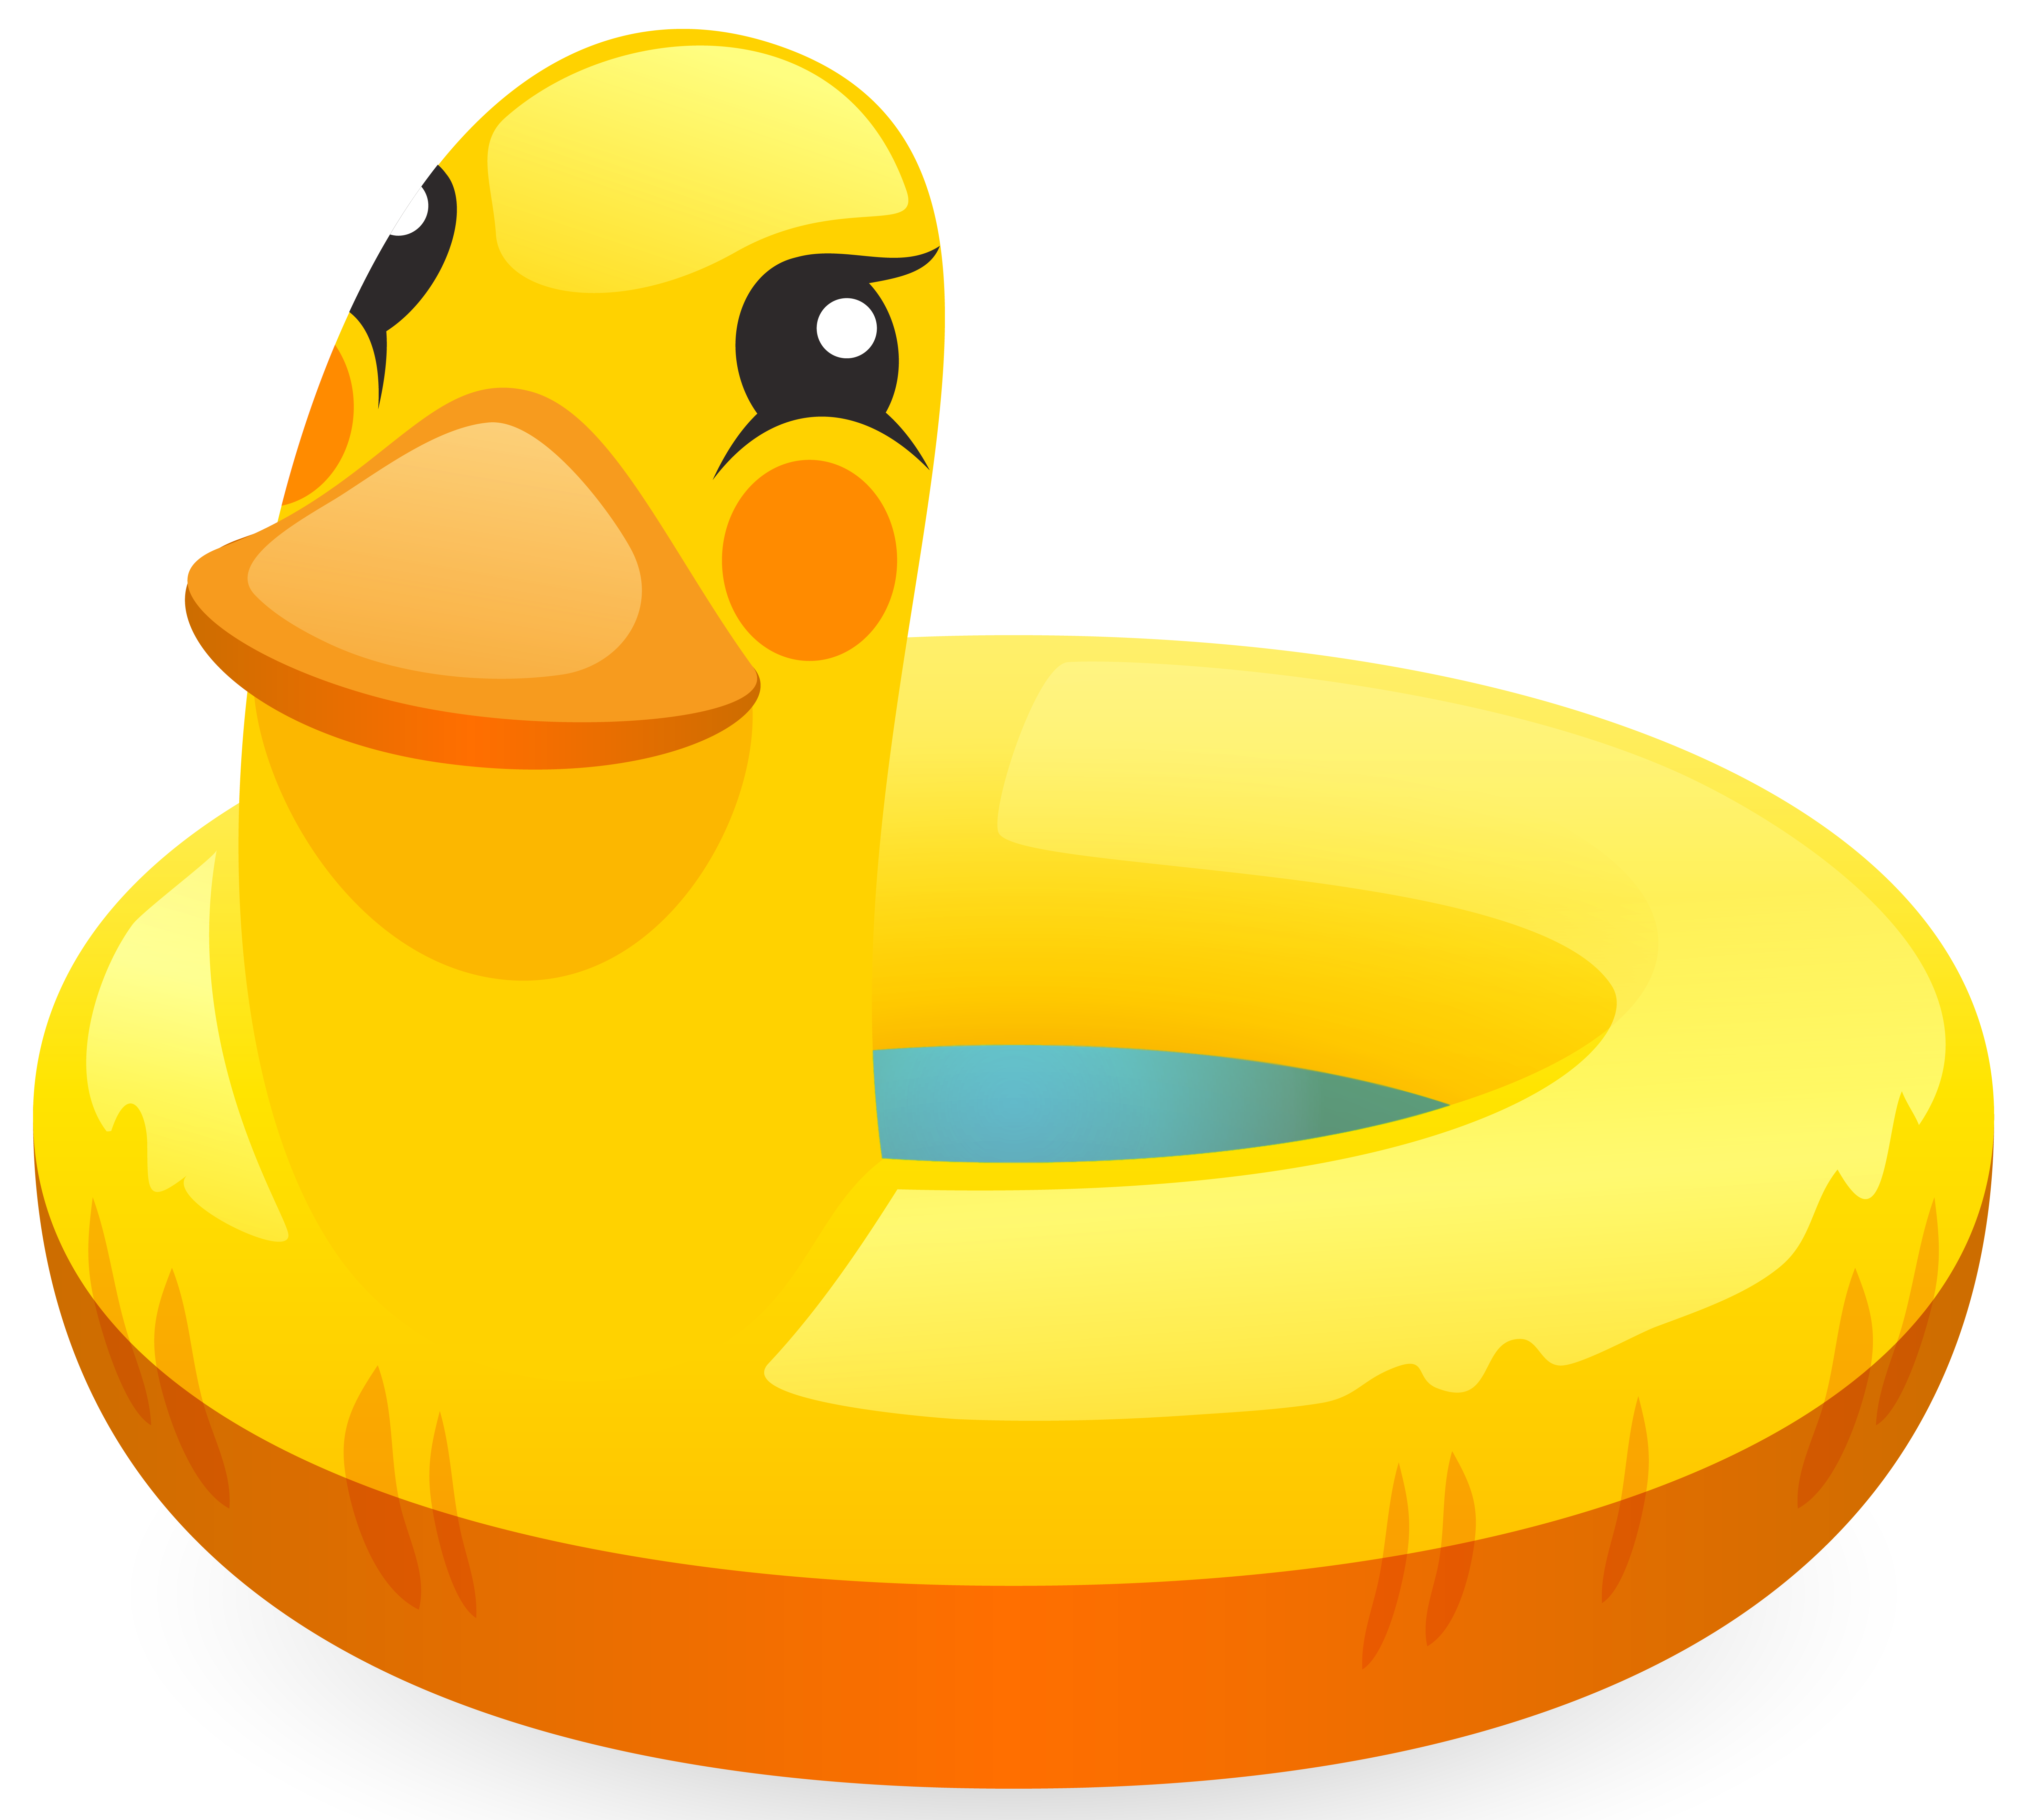 Swimming ring png clip. Ducks clipart toy duck